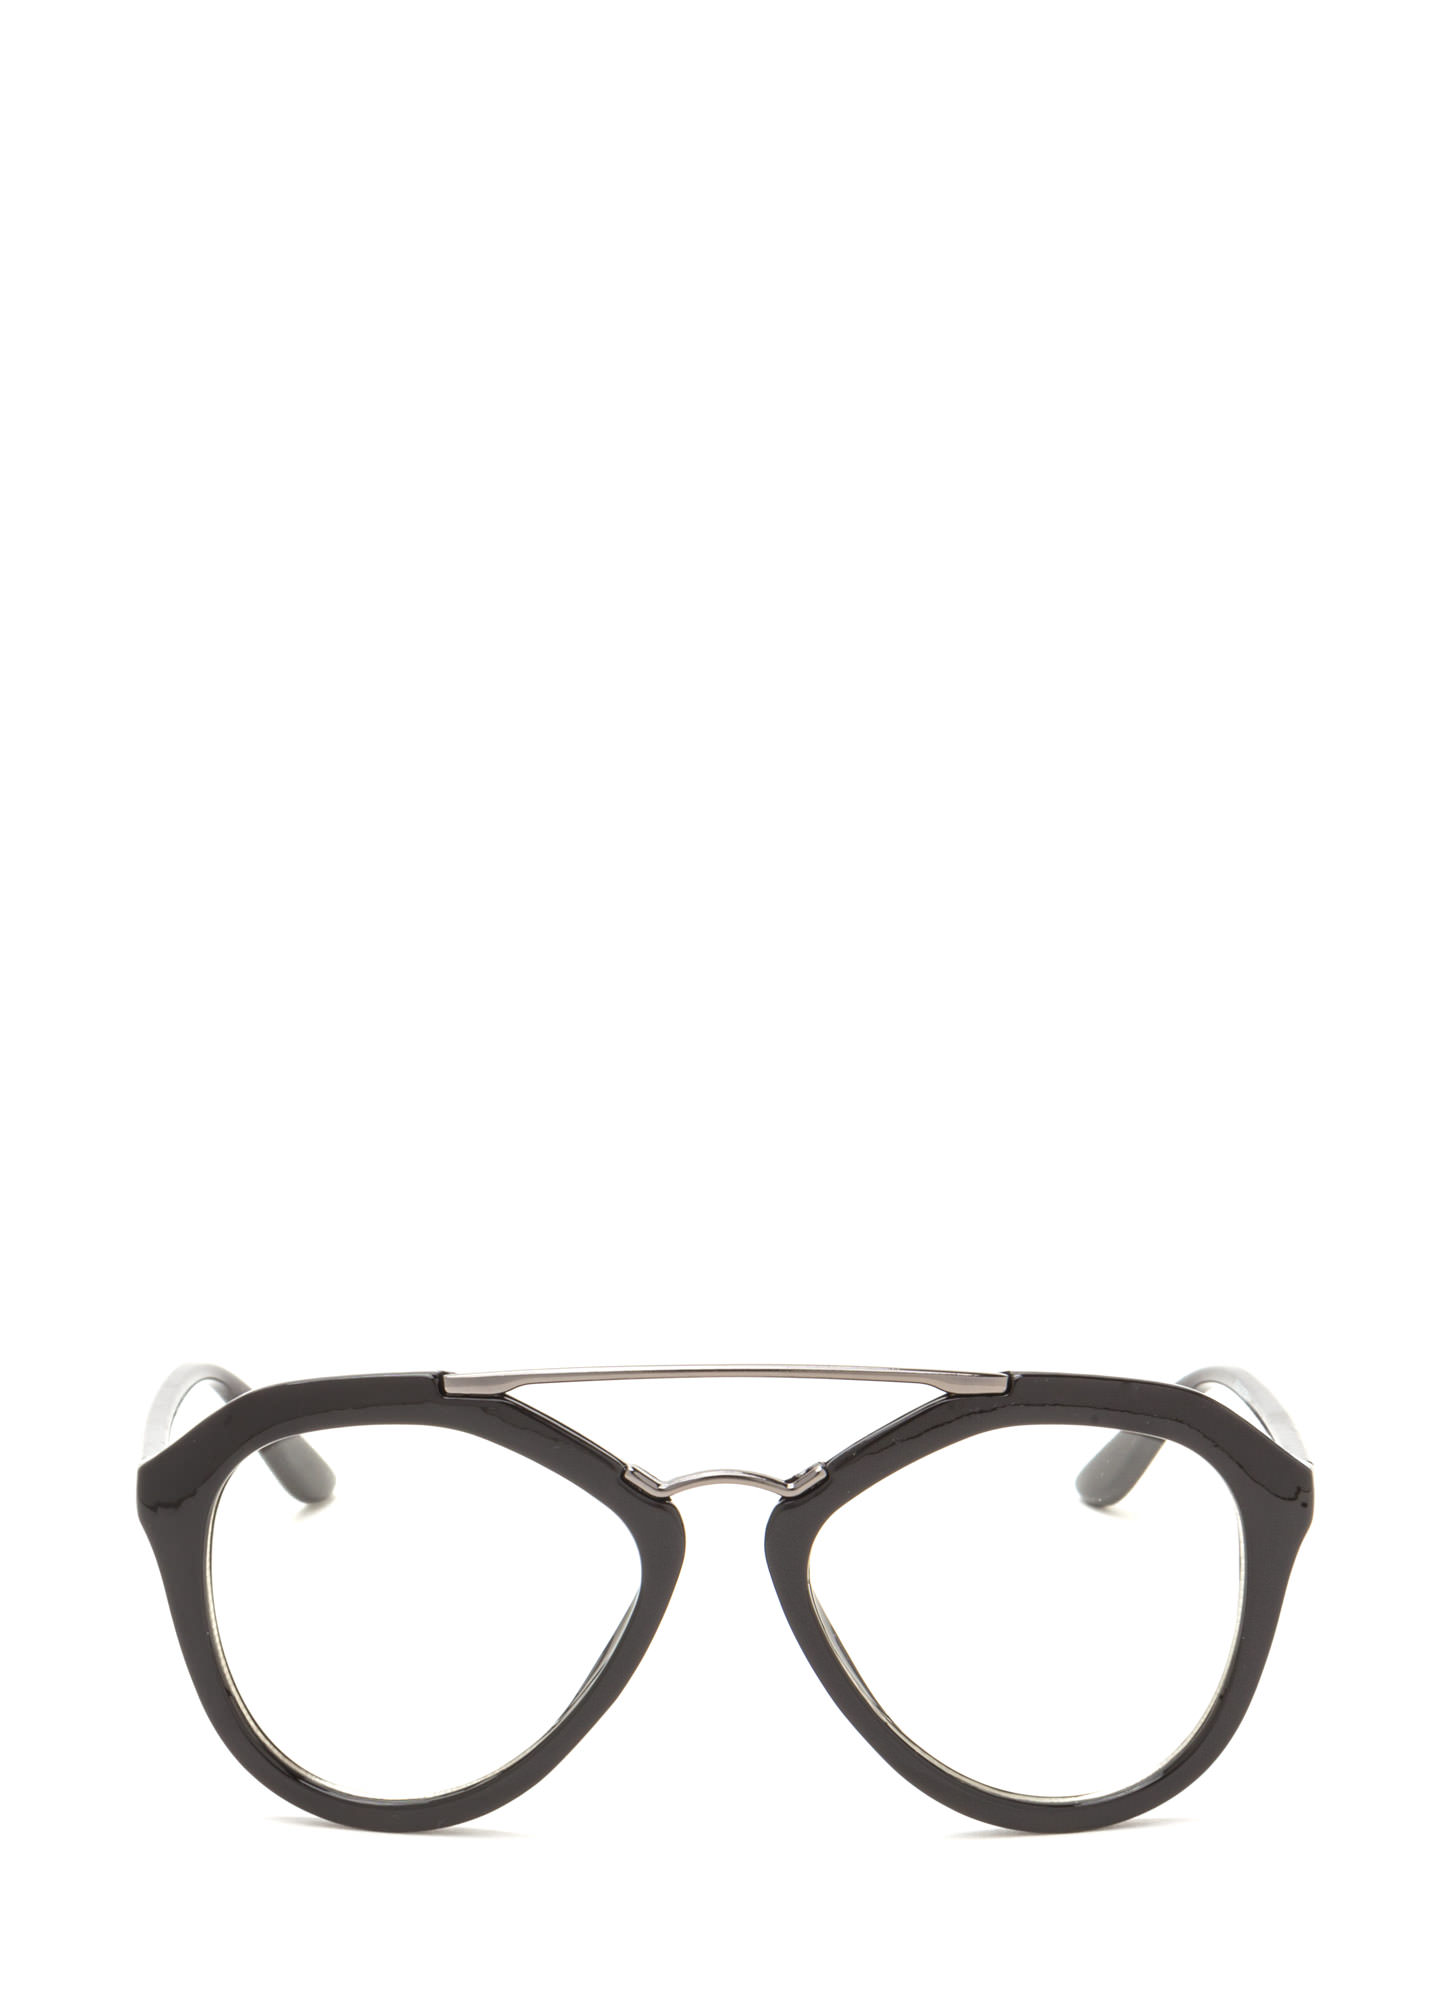 Geek Chic Brow Bar Glasses PEWTERBLACK